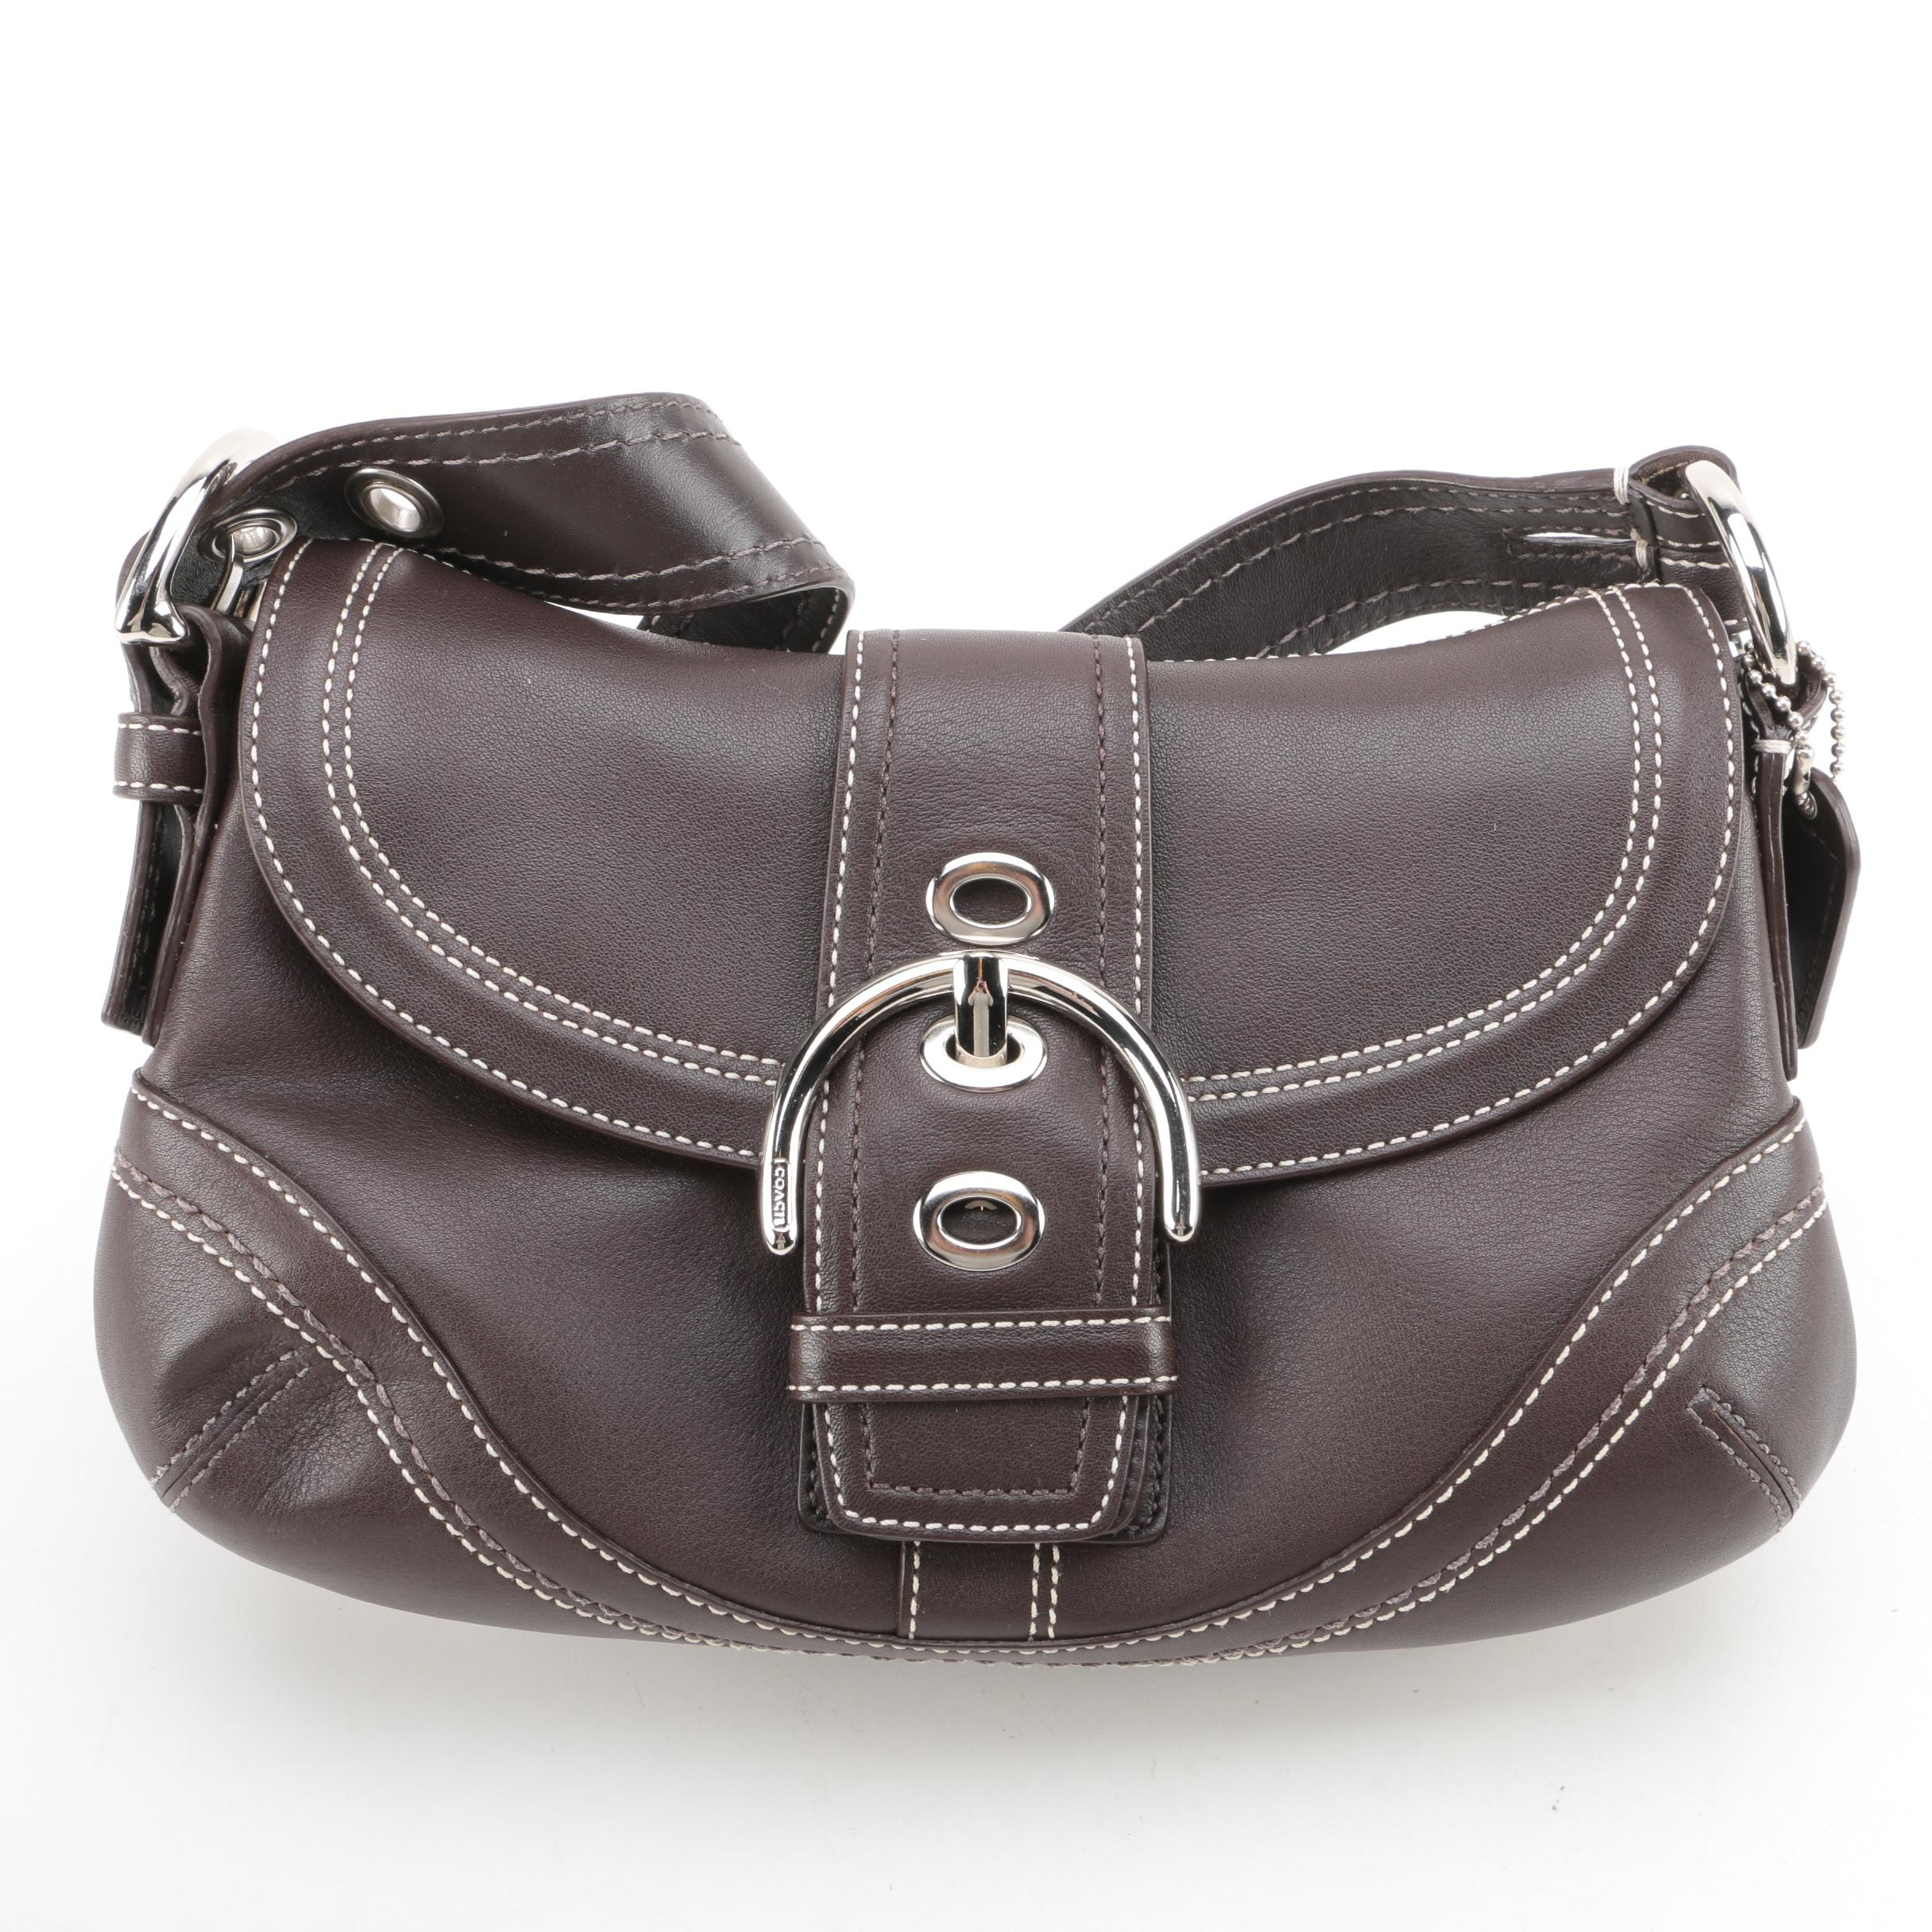 Coach Soho Buckle Flap Brown Leather Handbag